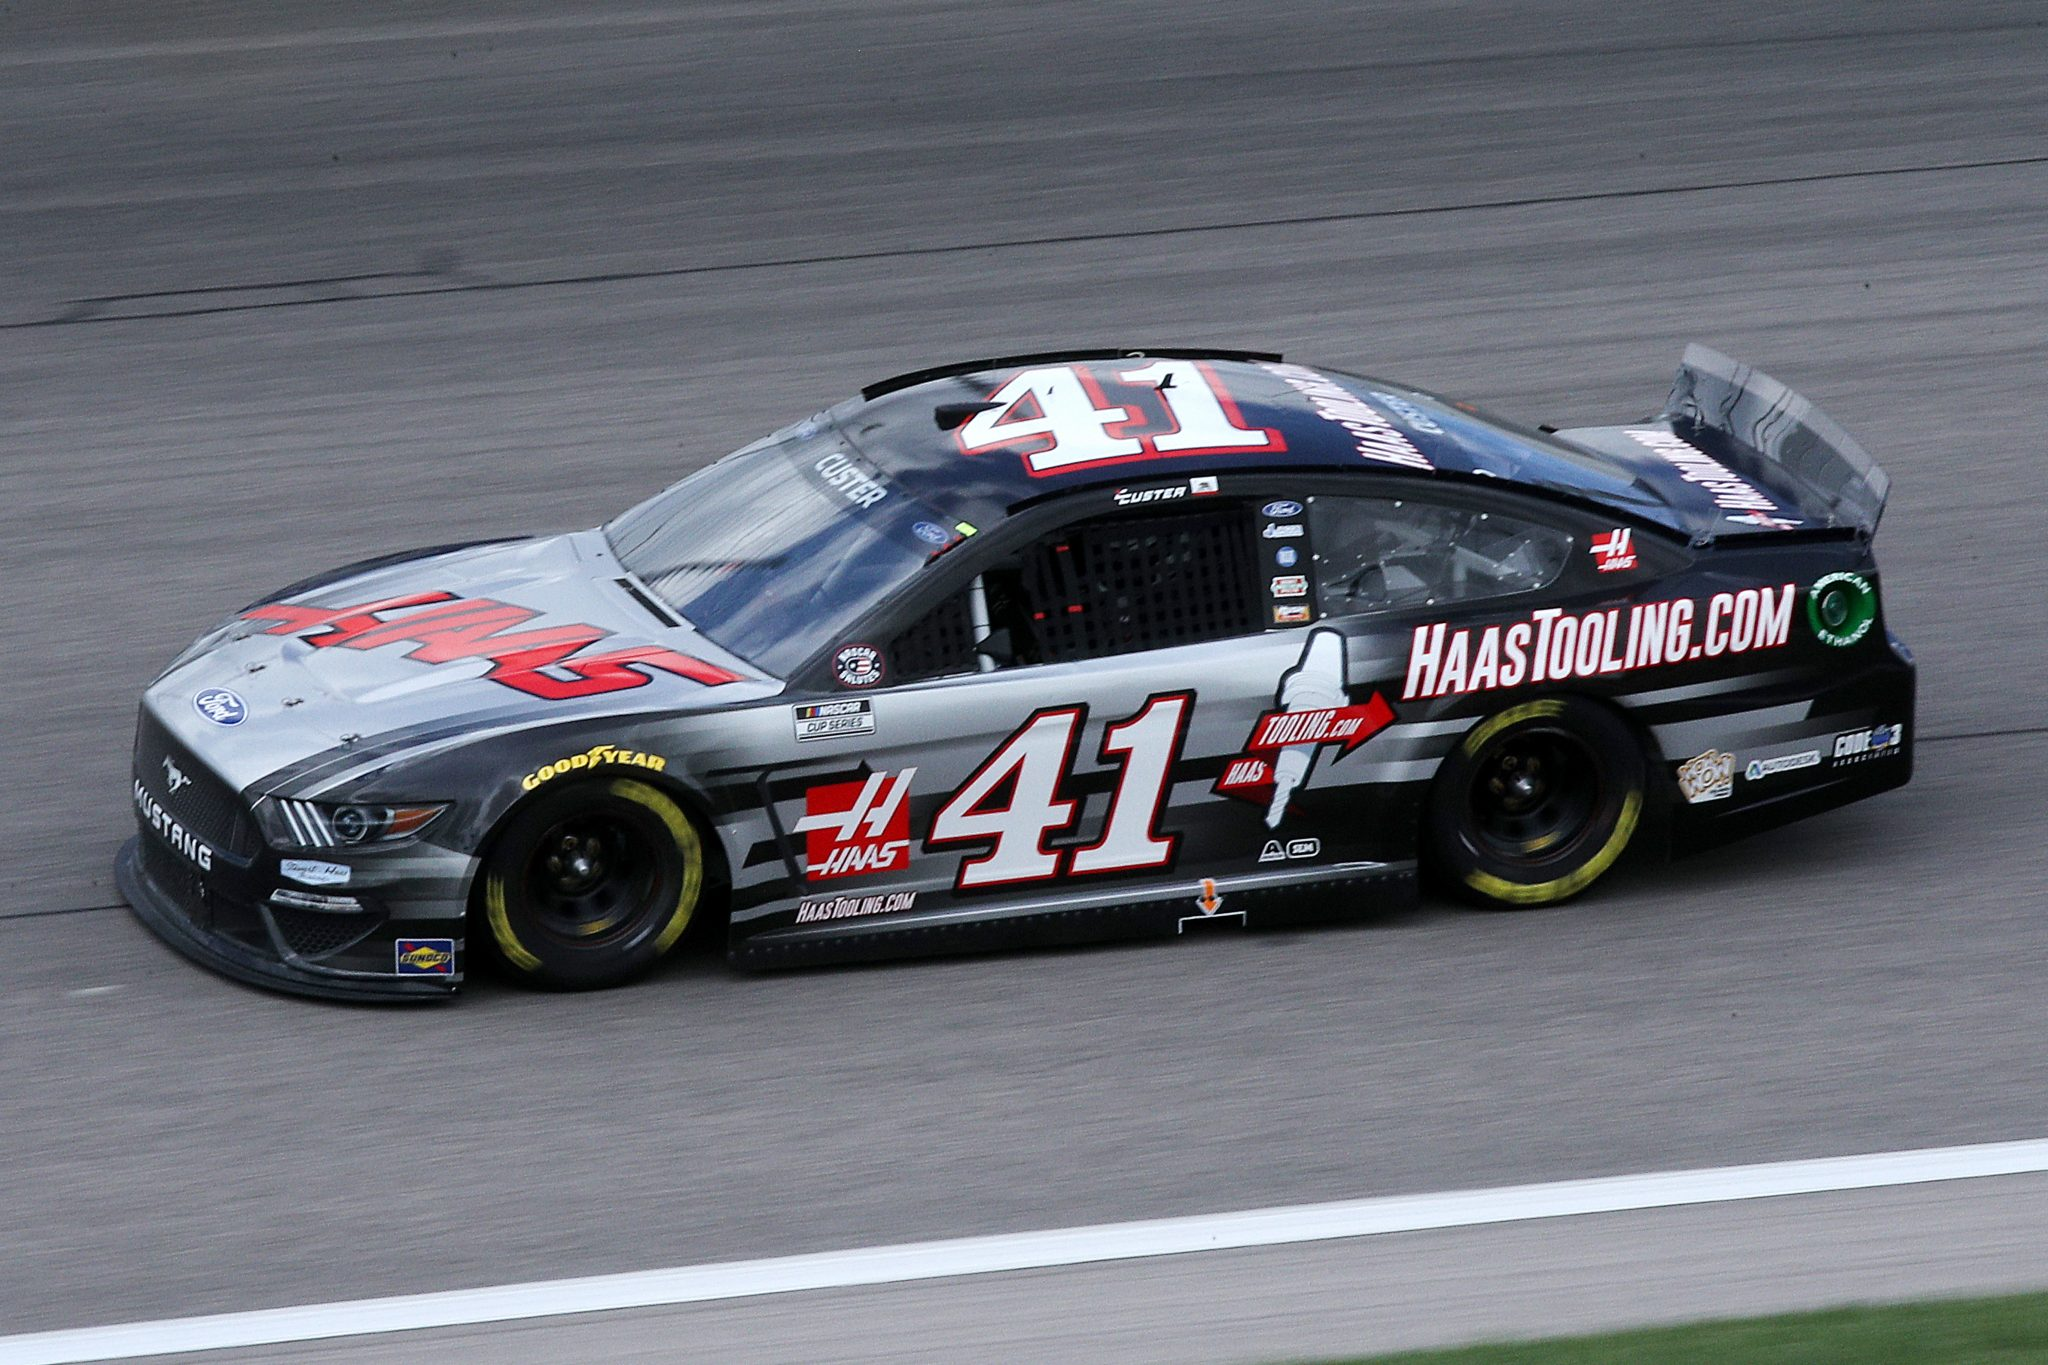 KANSAS CITY, KANSAS - MAY 02: Cole Custer, driver of the #41 HaasTooling.com Ford, drives during the NASCAR Cup Series Buschy McBusch Race 400 at Kansas Speedway on May 02, 2021 in Kansas City, Kansas. (Photo by Sean Gardner/Getty Images) | Getty Images